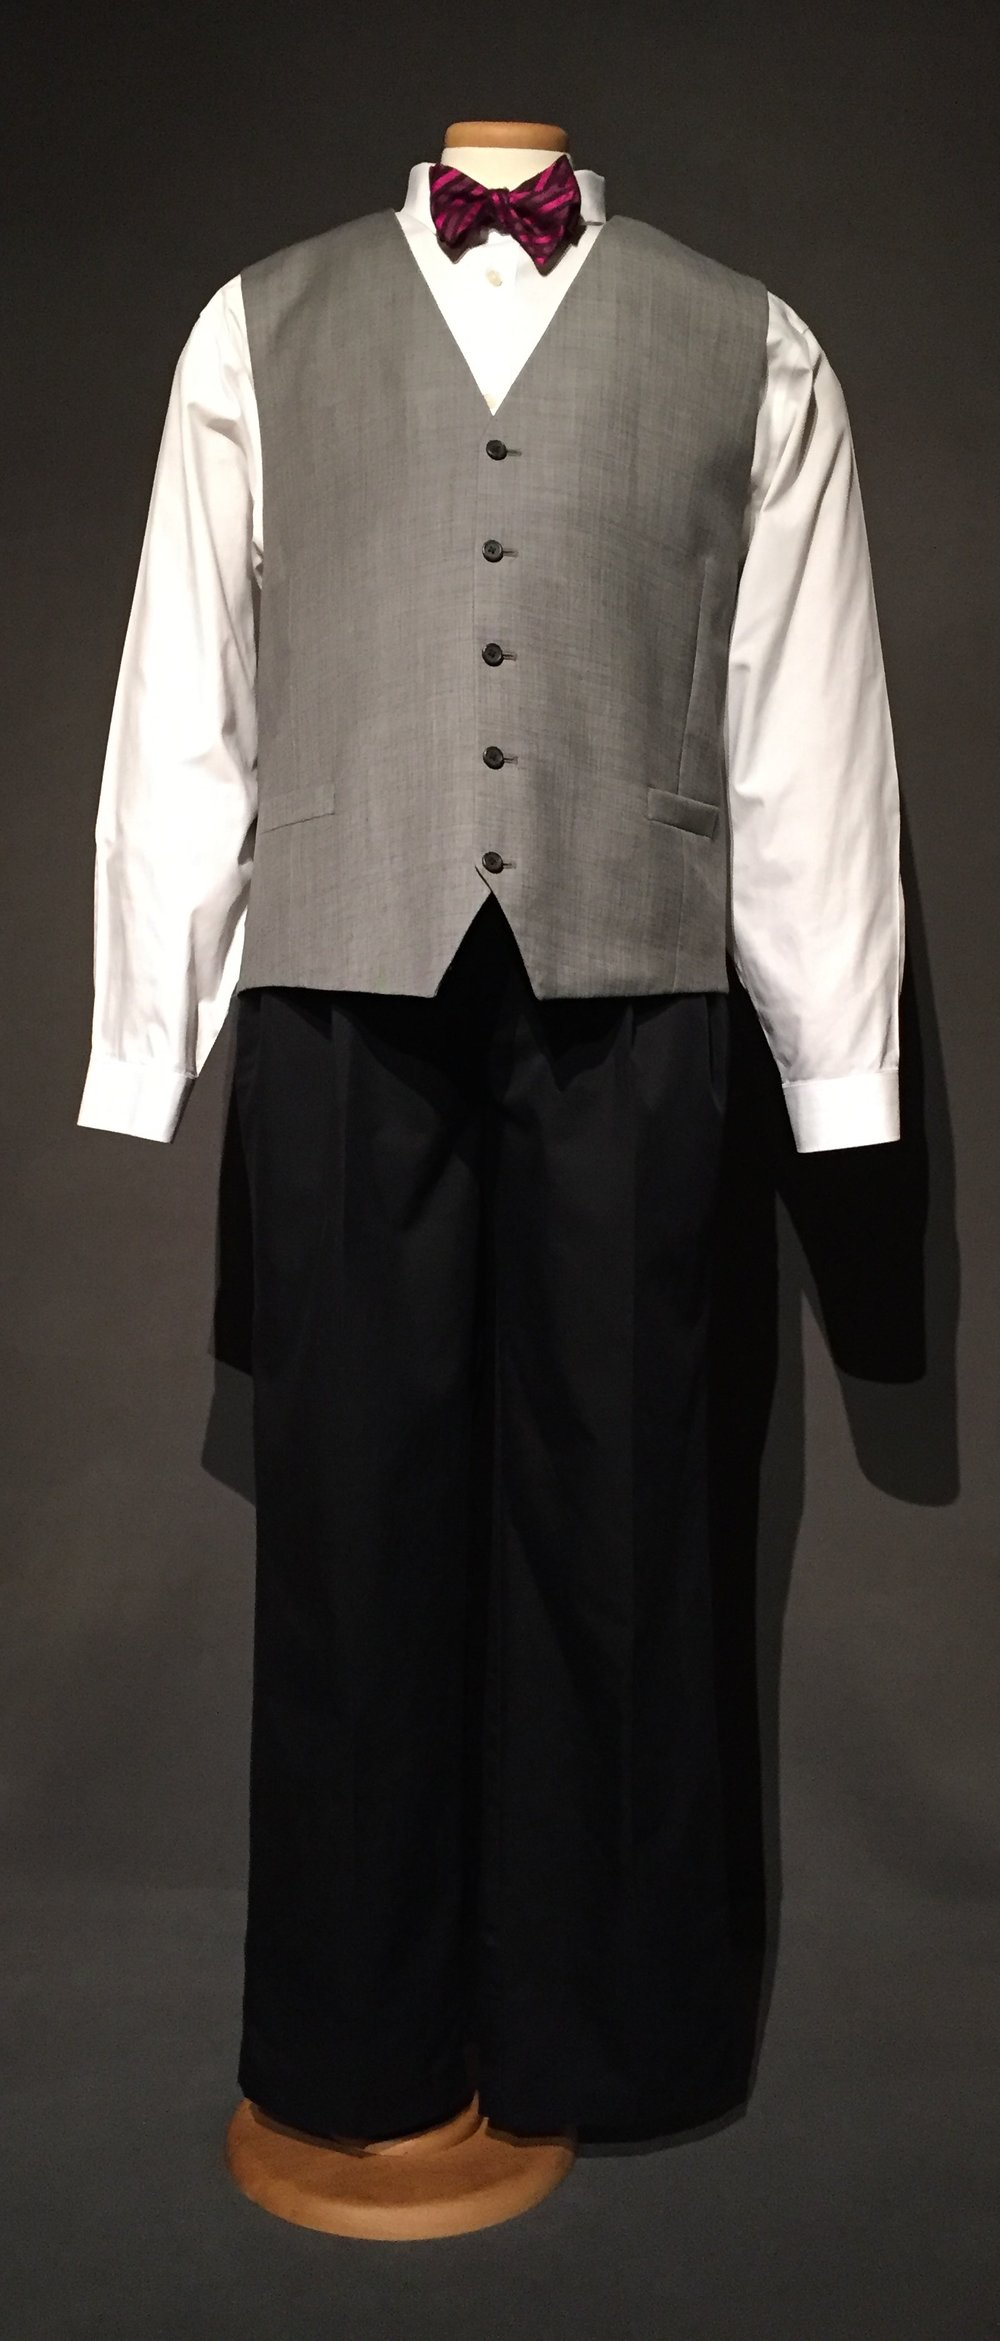 """- White button down, pink tie, grey vest, (Jennifer loan) blue pleated front pant (anonymous loan)Owner – Jennifer, lesbian, genderqueer, 50, lives in Iowac. 2010s""""I dress like a man. I mean I present like a man, I think everything that I have on except underwear is on the man side."""" -personal interview with Jennifer, October 28, 2017"""